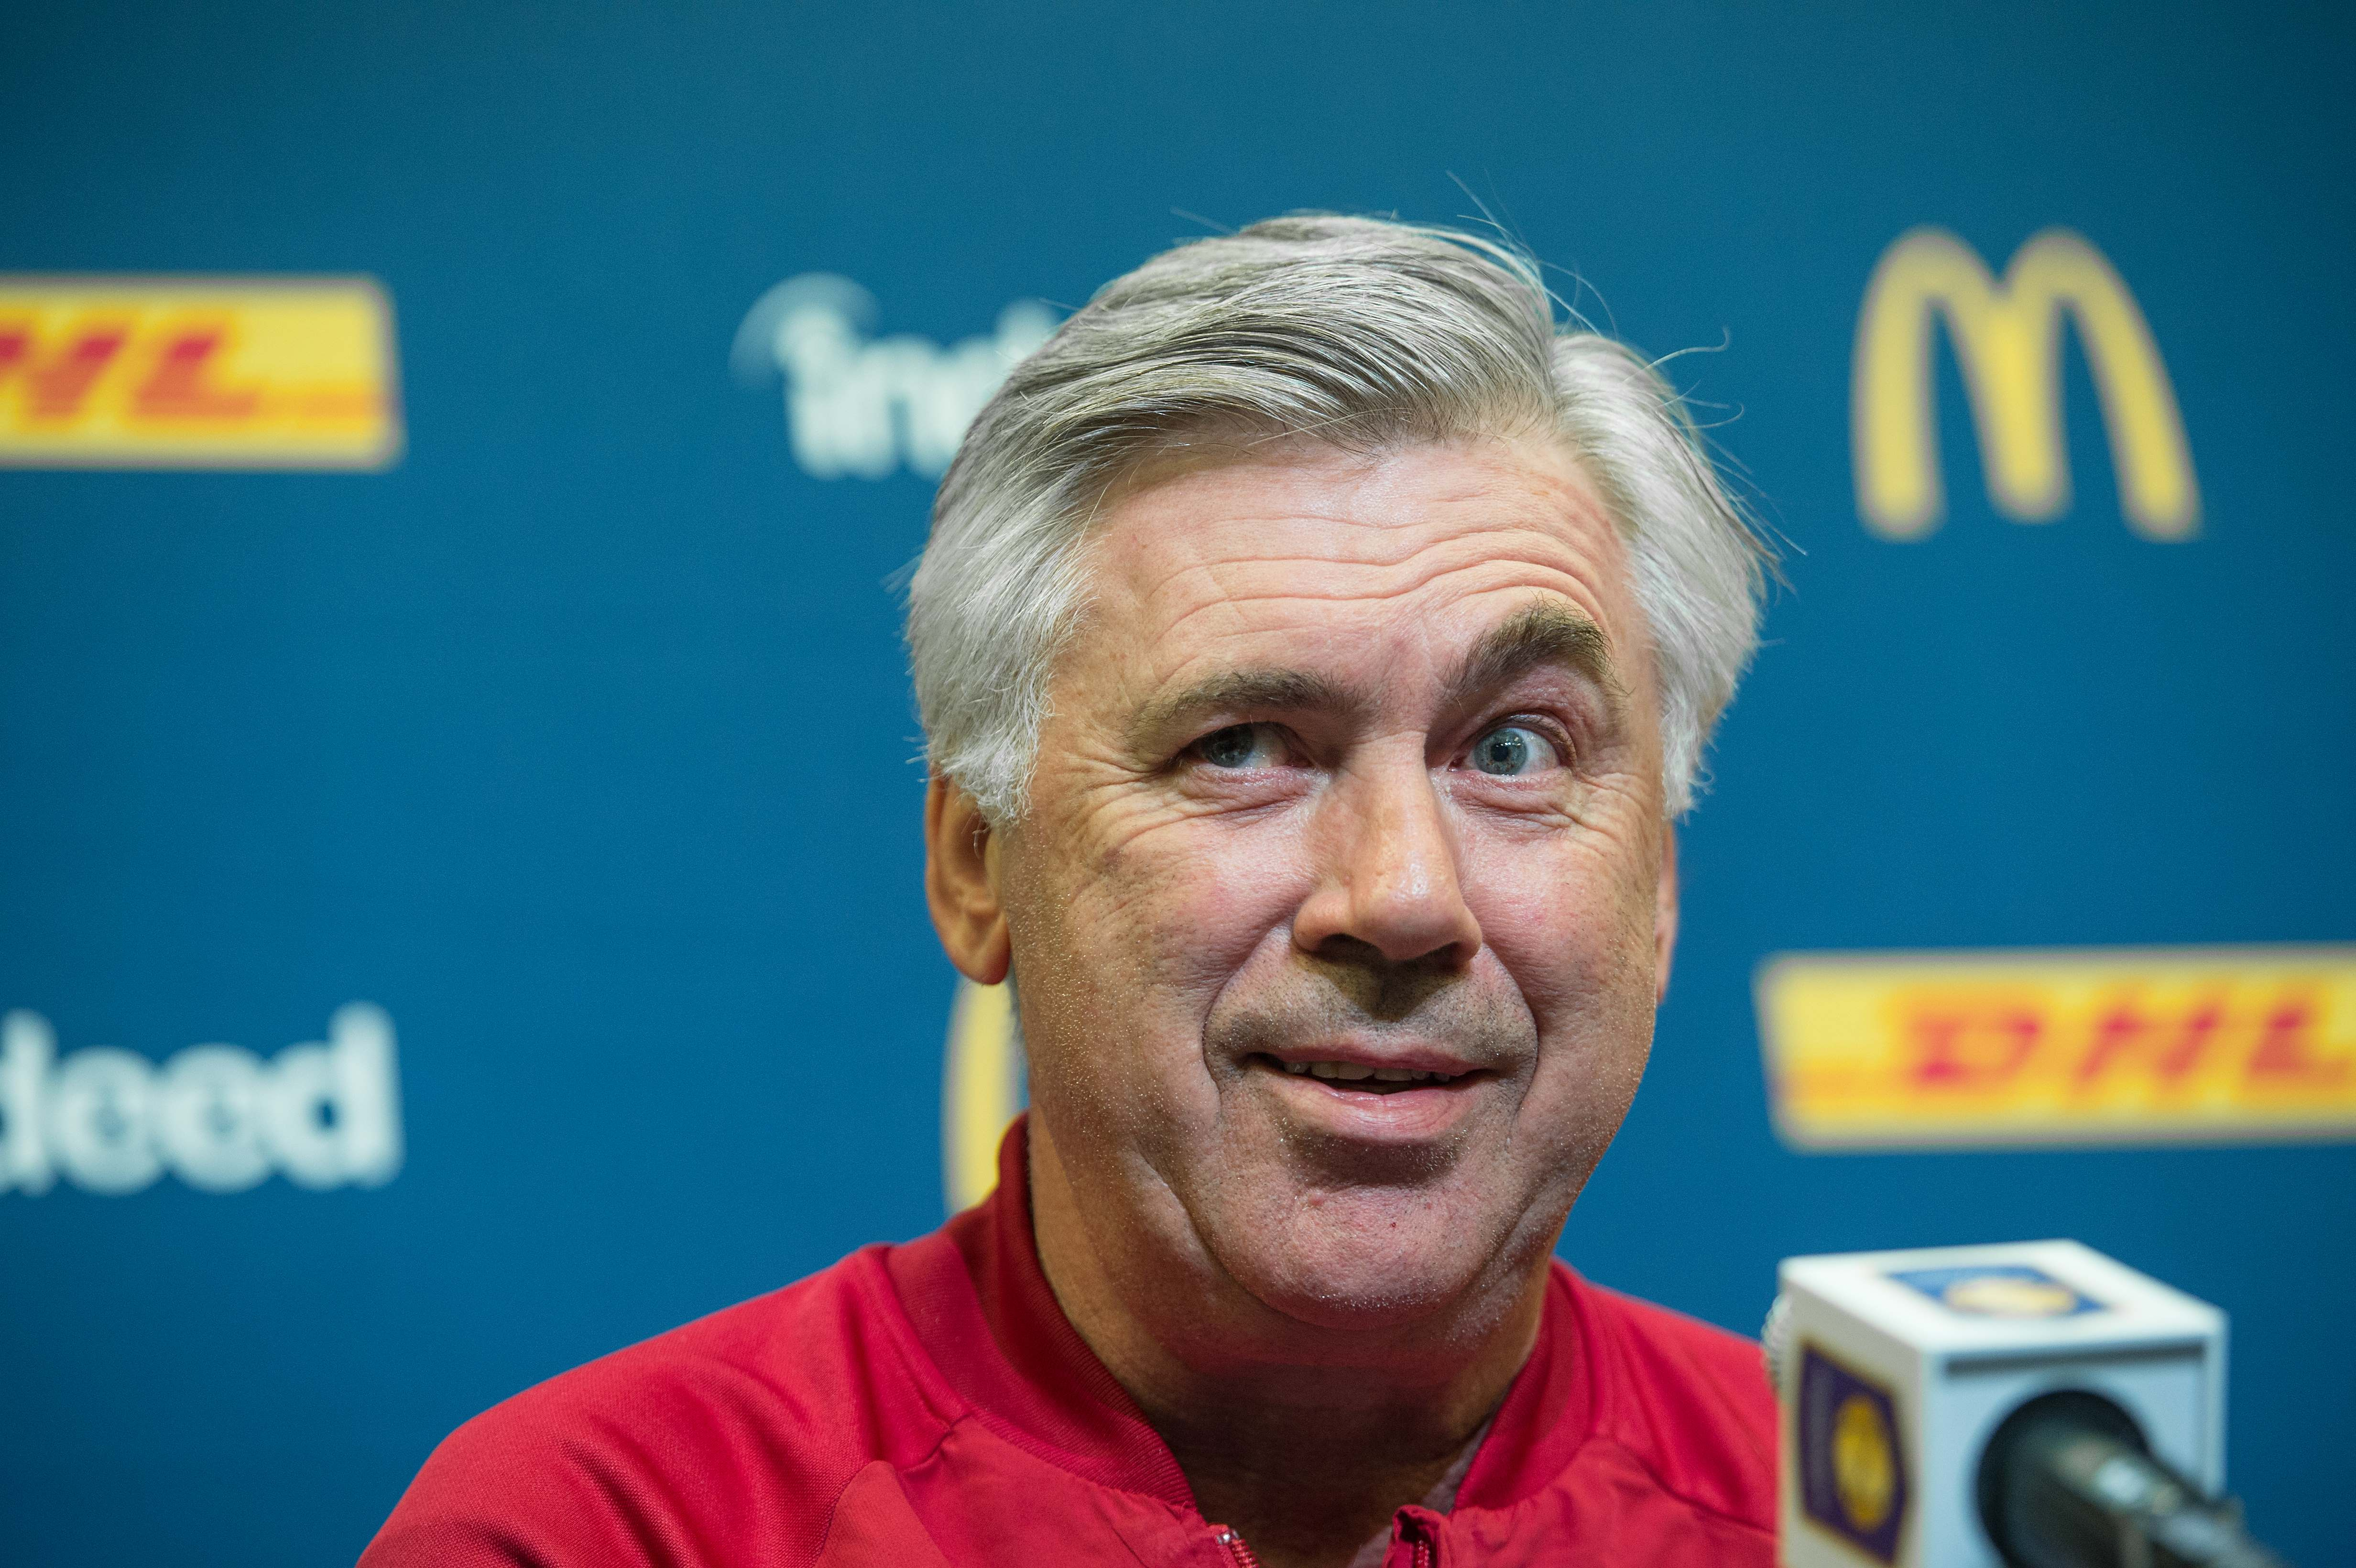 Bayern Munich's new coach Carlo Ancelotti holds a press conference in Charlotte, North Carolina, on July 29, 2016, on the eve of Bayern's International Champions Cup match against Inter Milan. / AFP / Nicholas Kamm (Photo credit should read NICHOLAS KAMM/AFP/Getty Images)